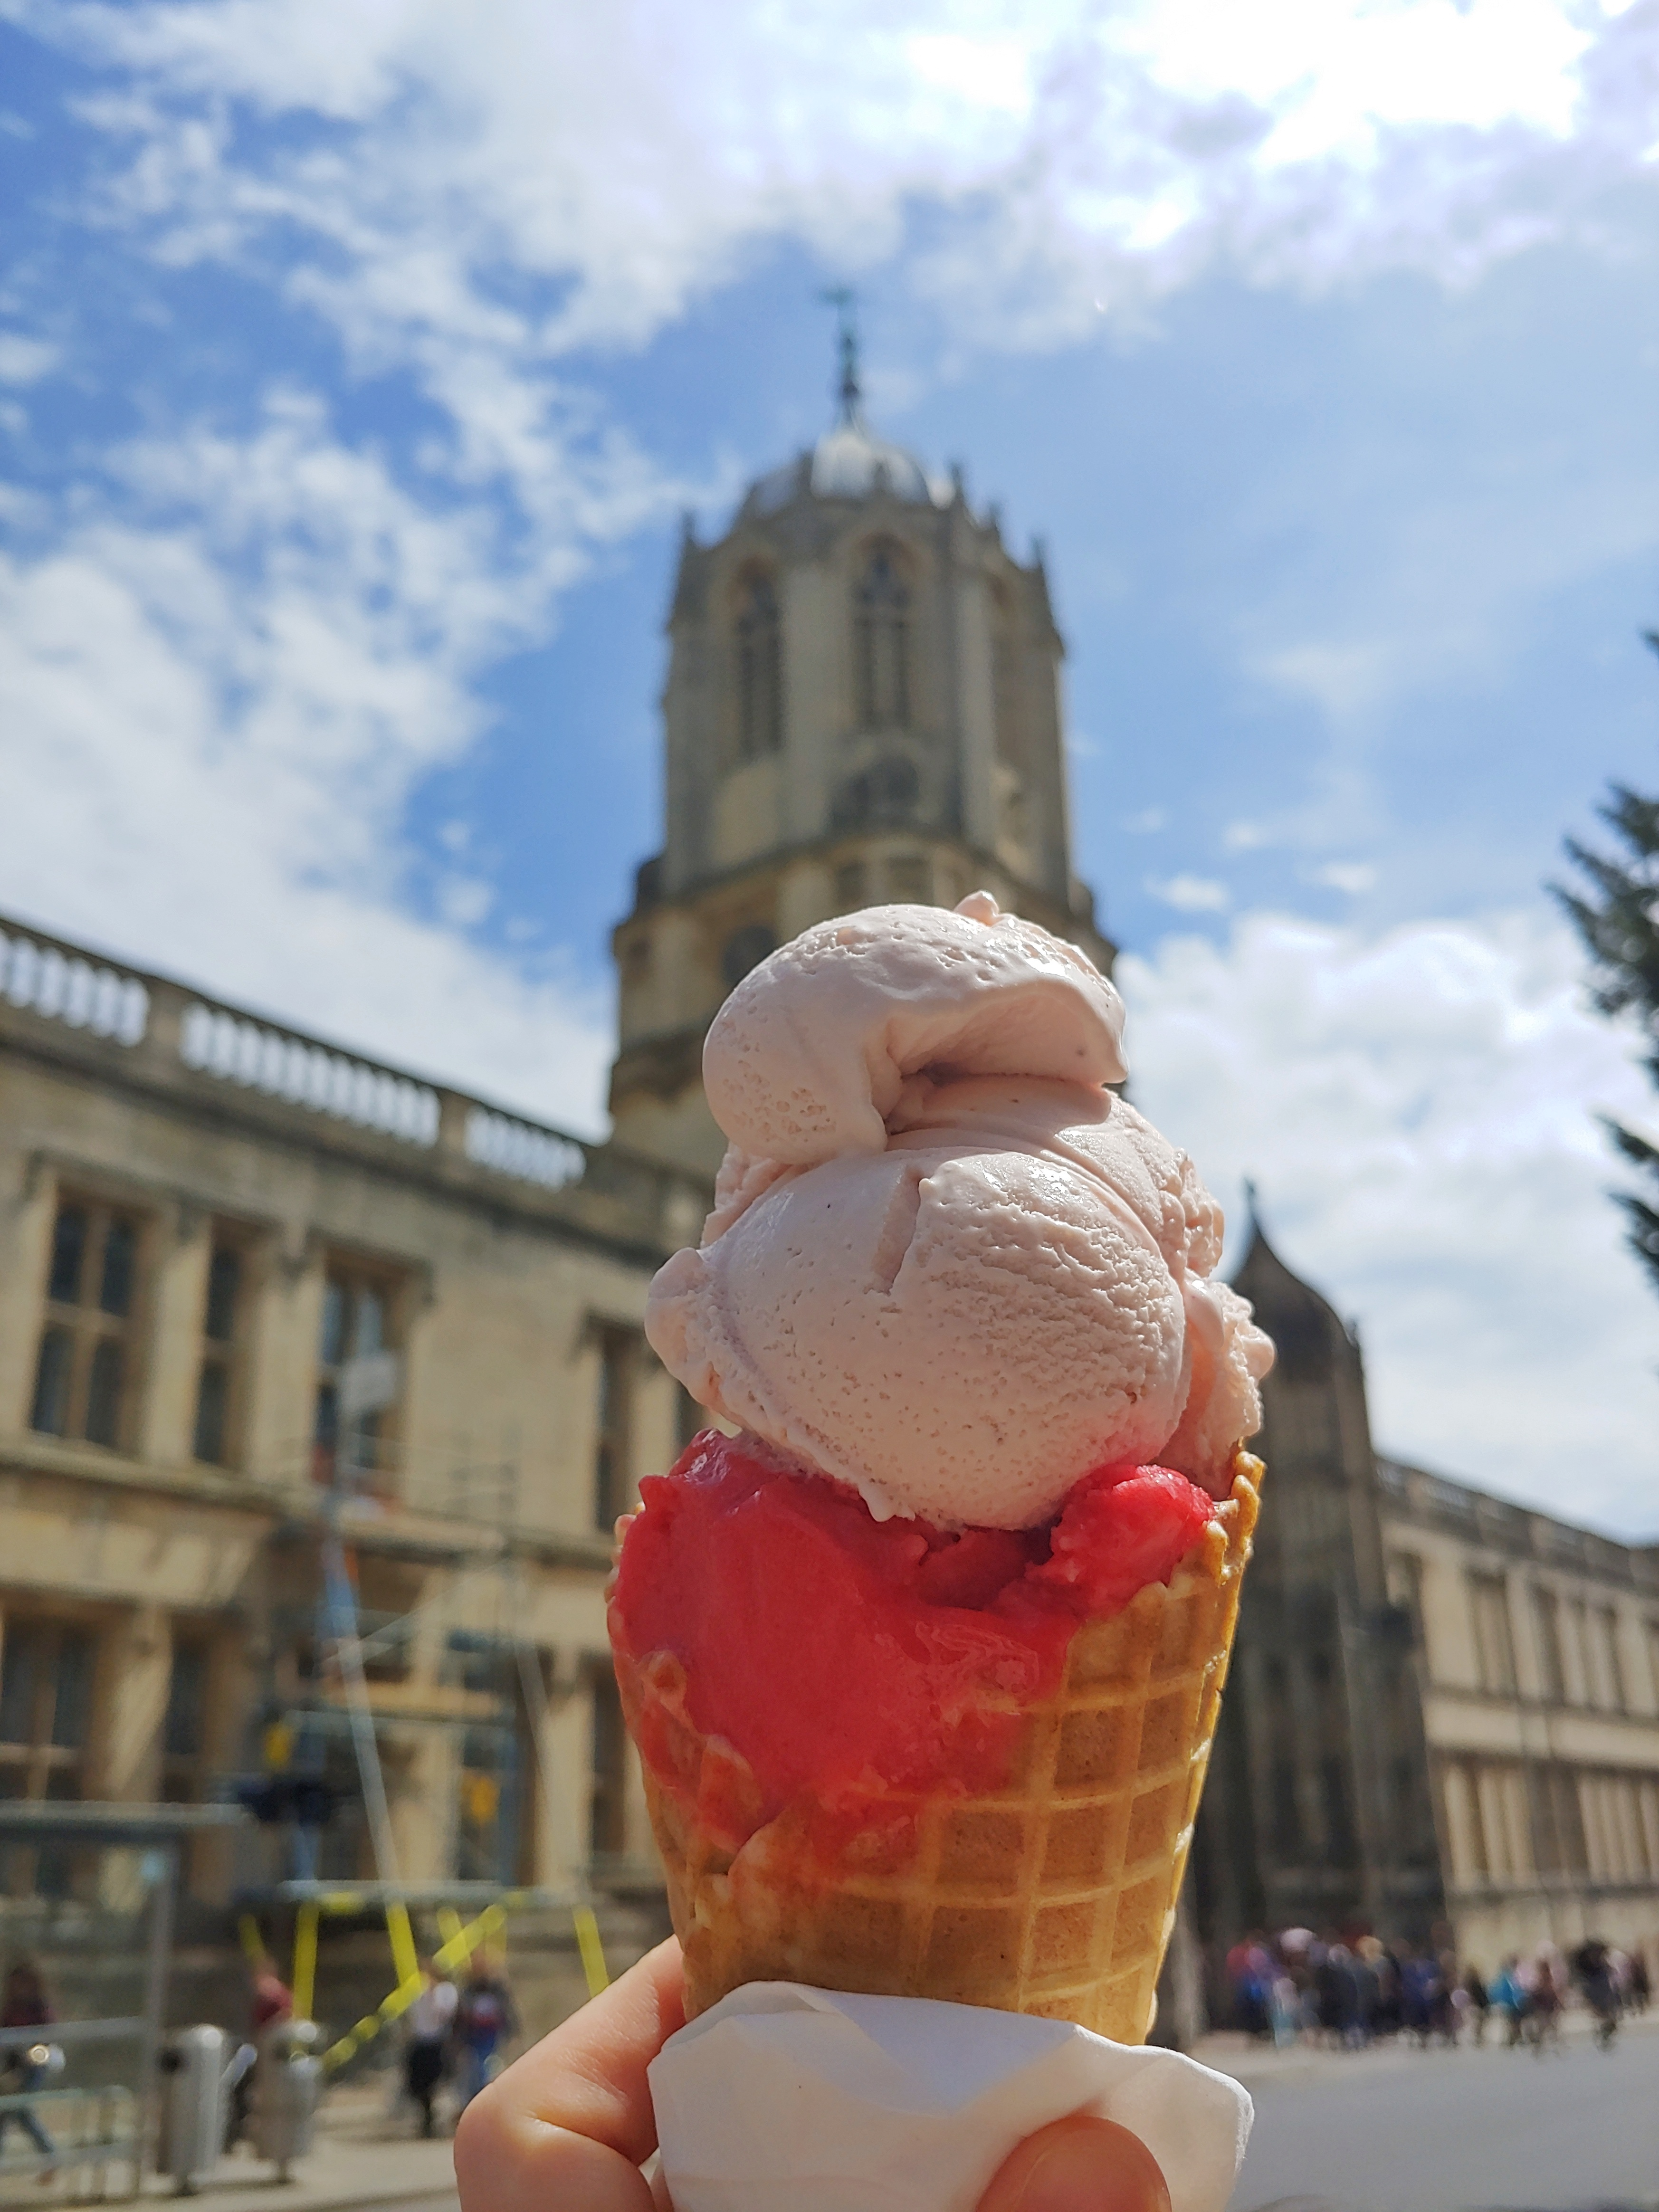 View of a cone of ice cream with light pink strawberry ice cream and deep pink raspberry sorbet, held in front of Christ Church's Tom Tower